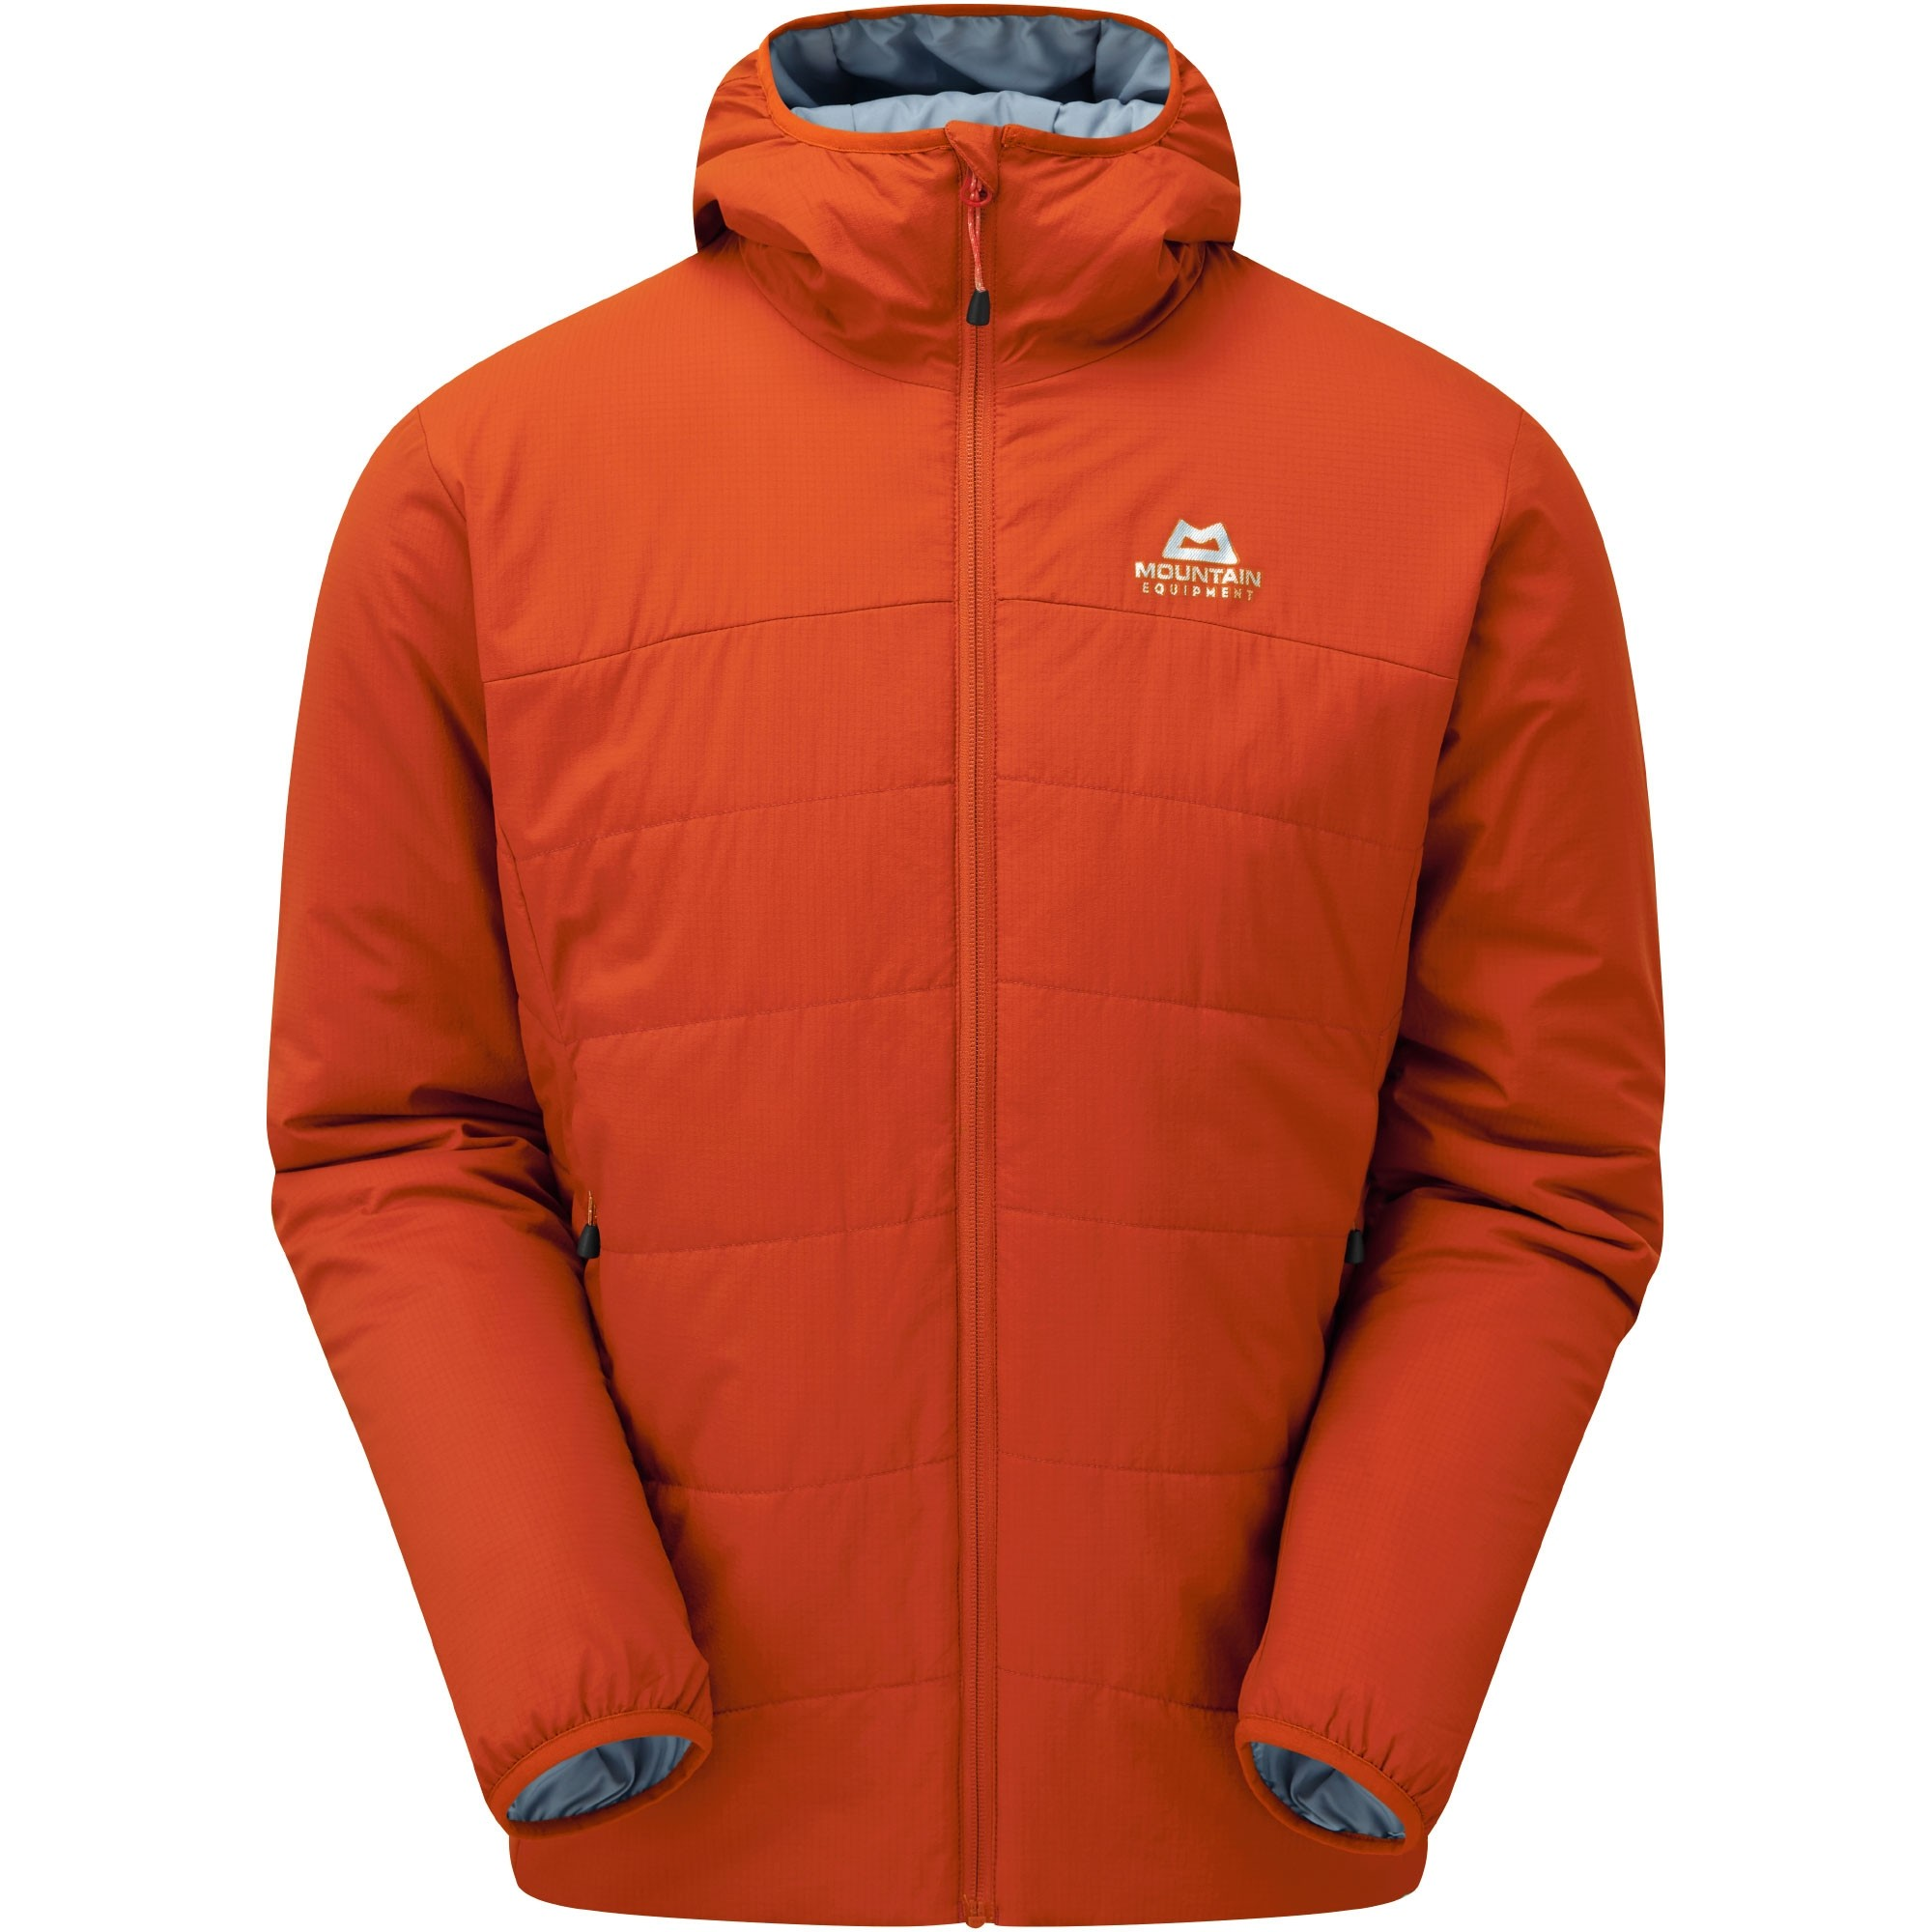 Mountain Equipment Transition Insulated Men's Jacket - Magma